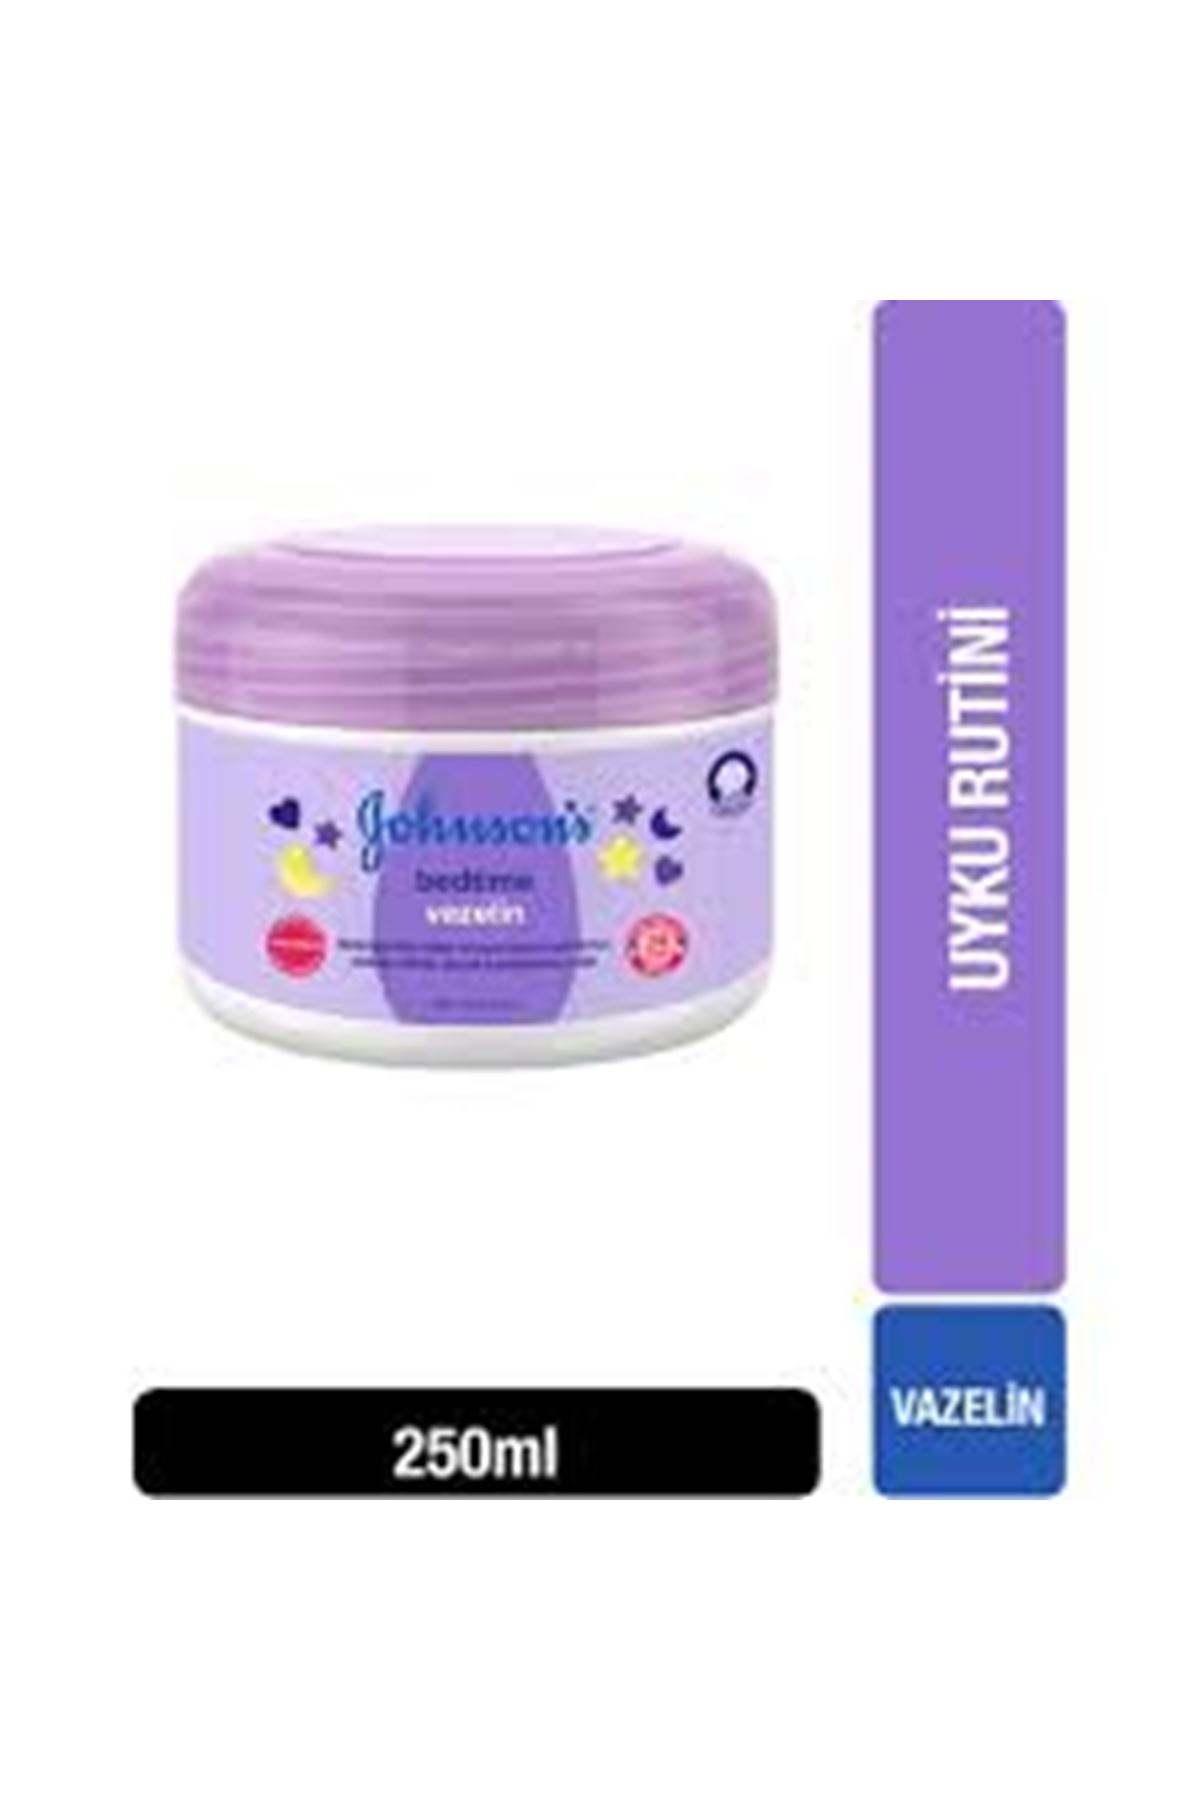 Johnson's Baby Bedtime Vazelin 250ml